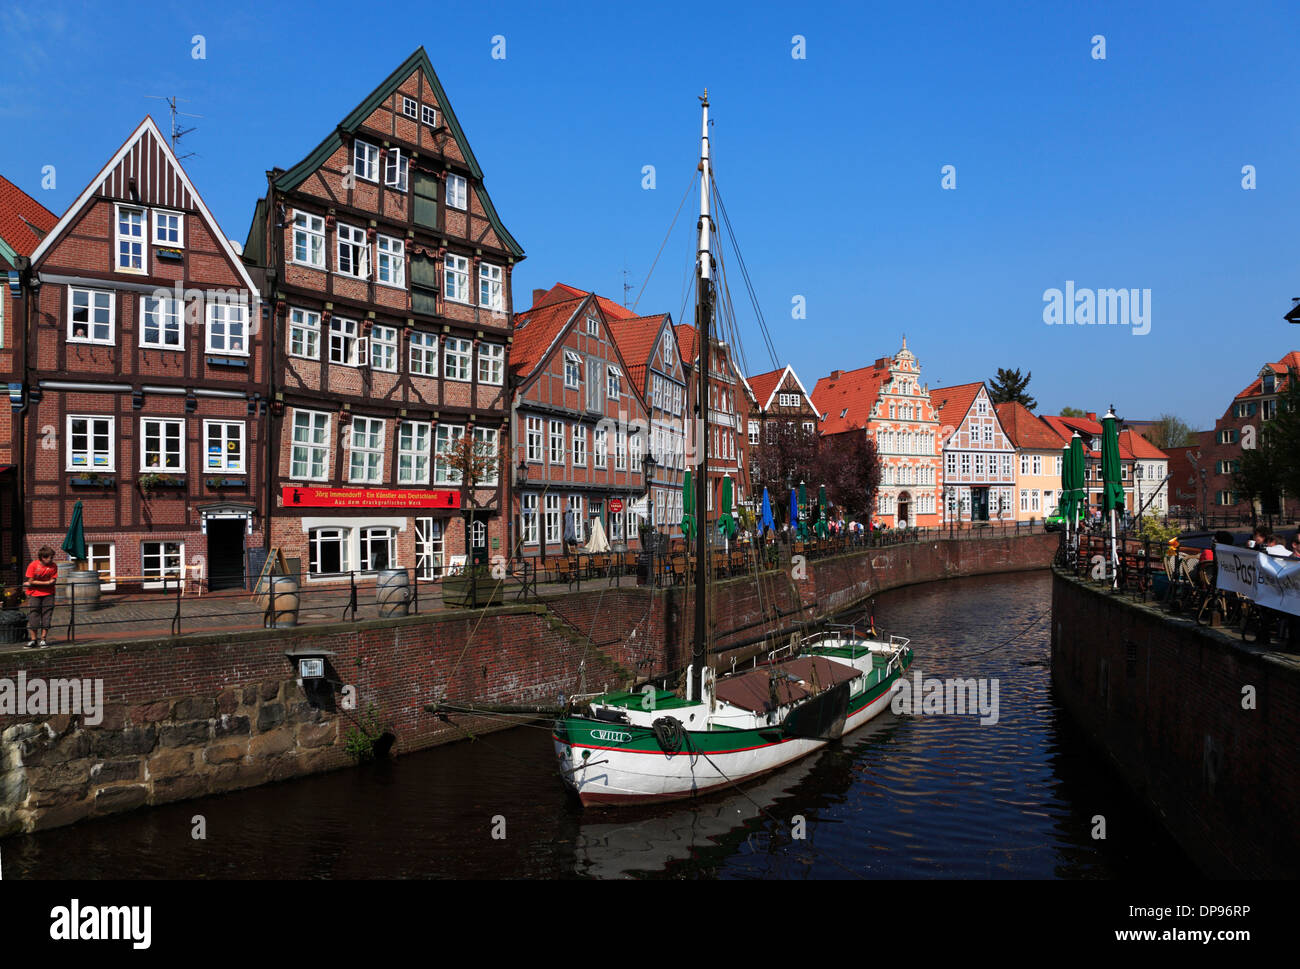 Altes Land, Stade, boat  Ewer WILLI in the old harbor, Lower Saxony, Germany, Europe Stock Photo